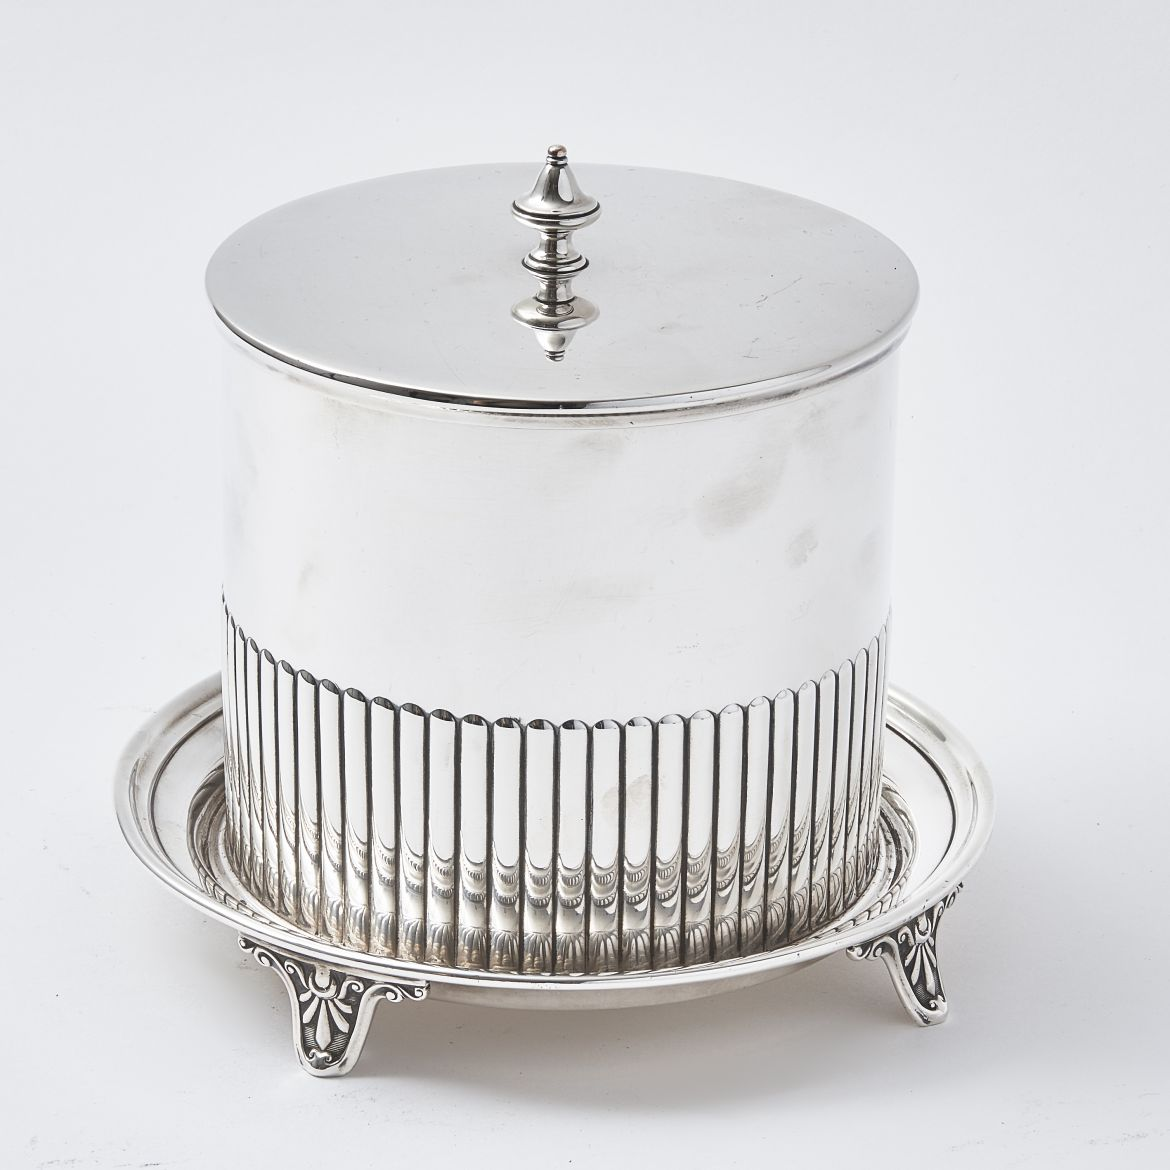 Elkington & Co Reeded Biscuit Barrel